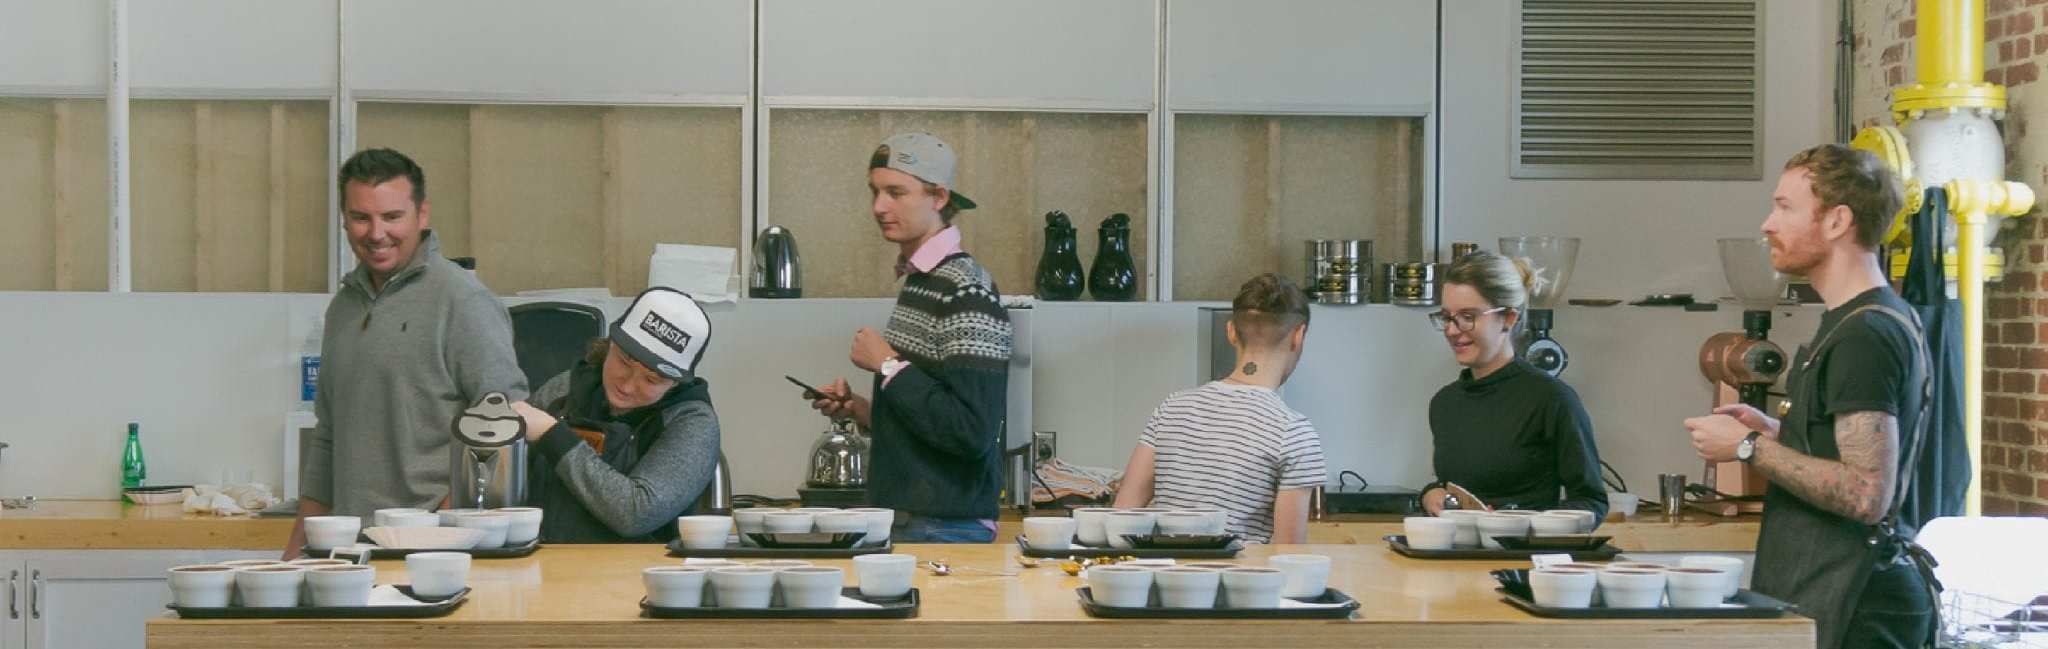 Baristas doing a cupping